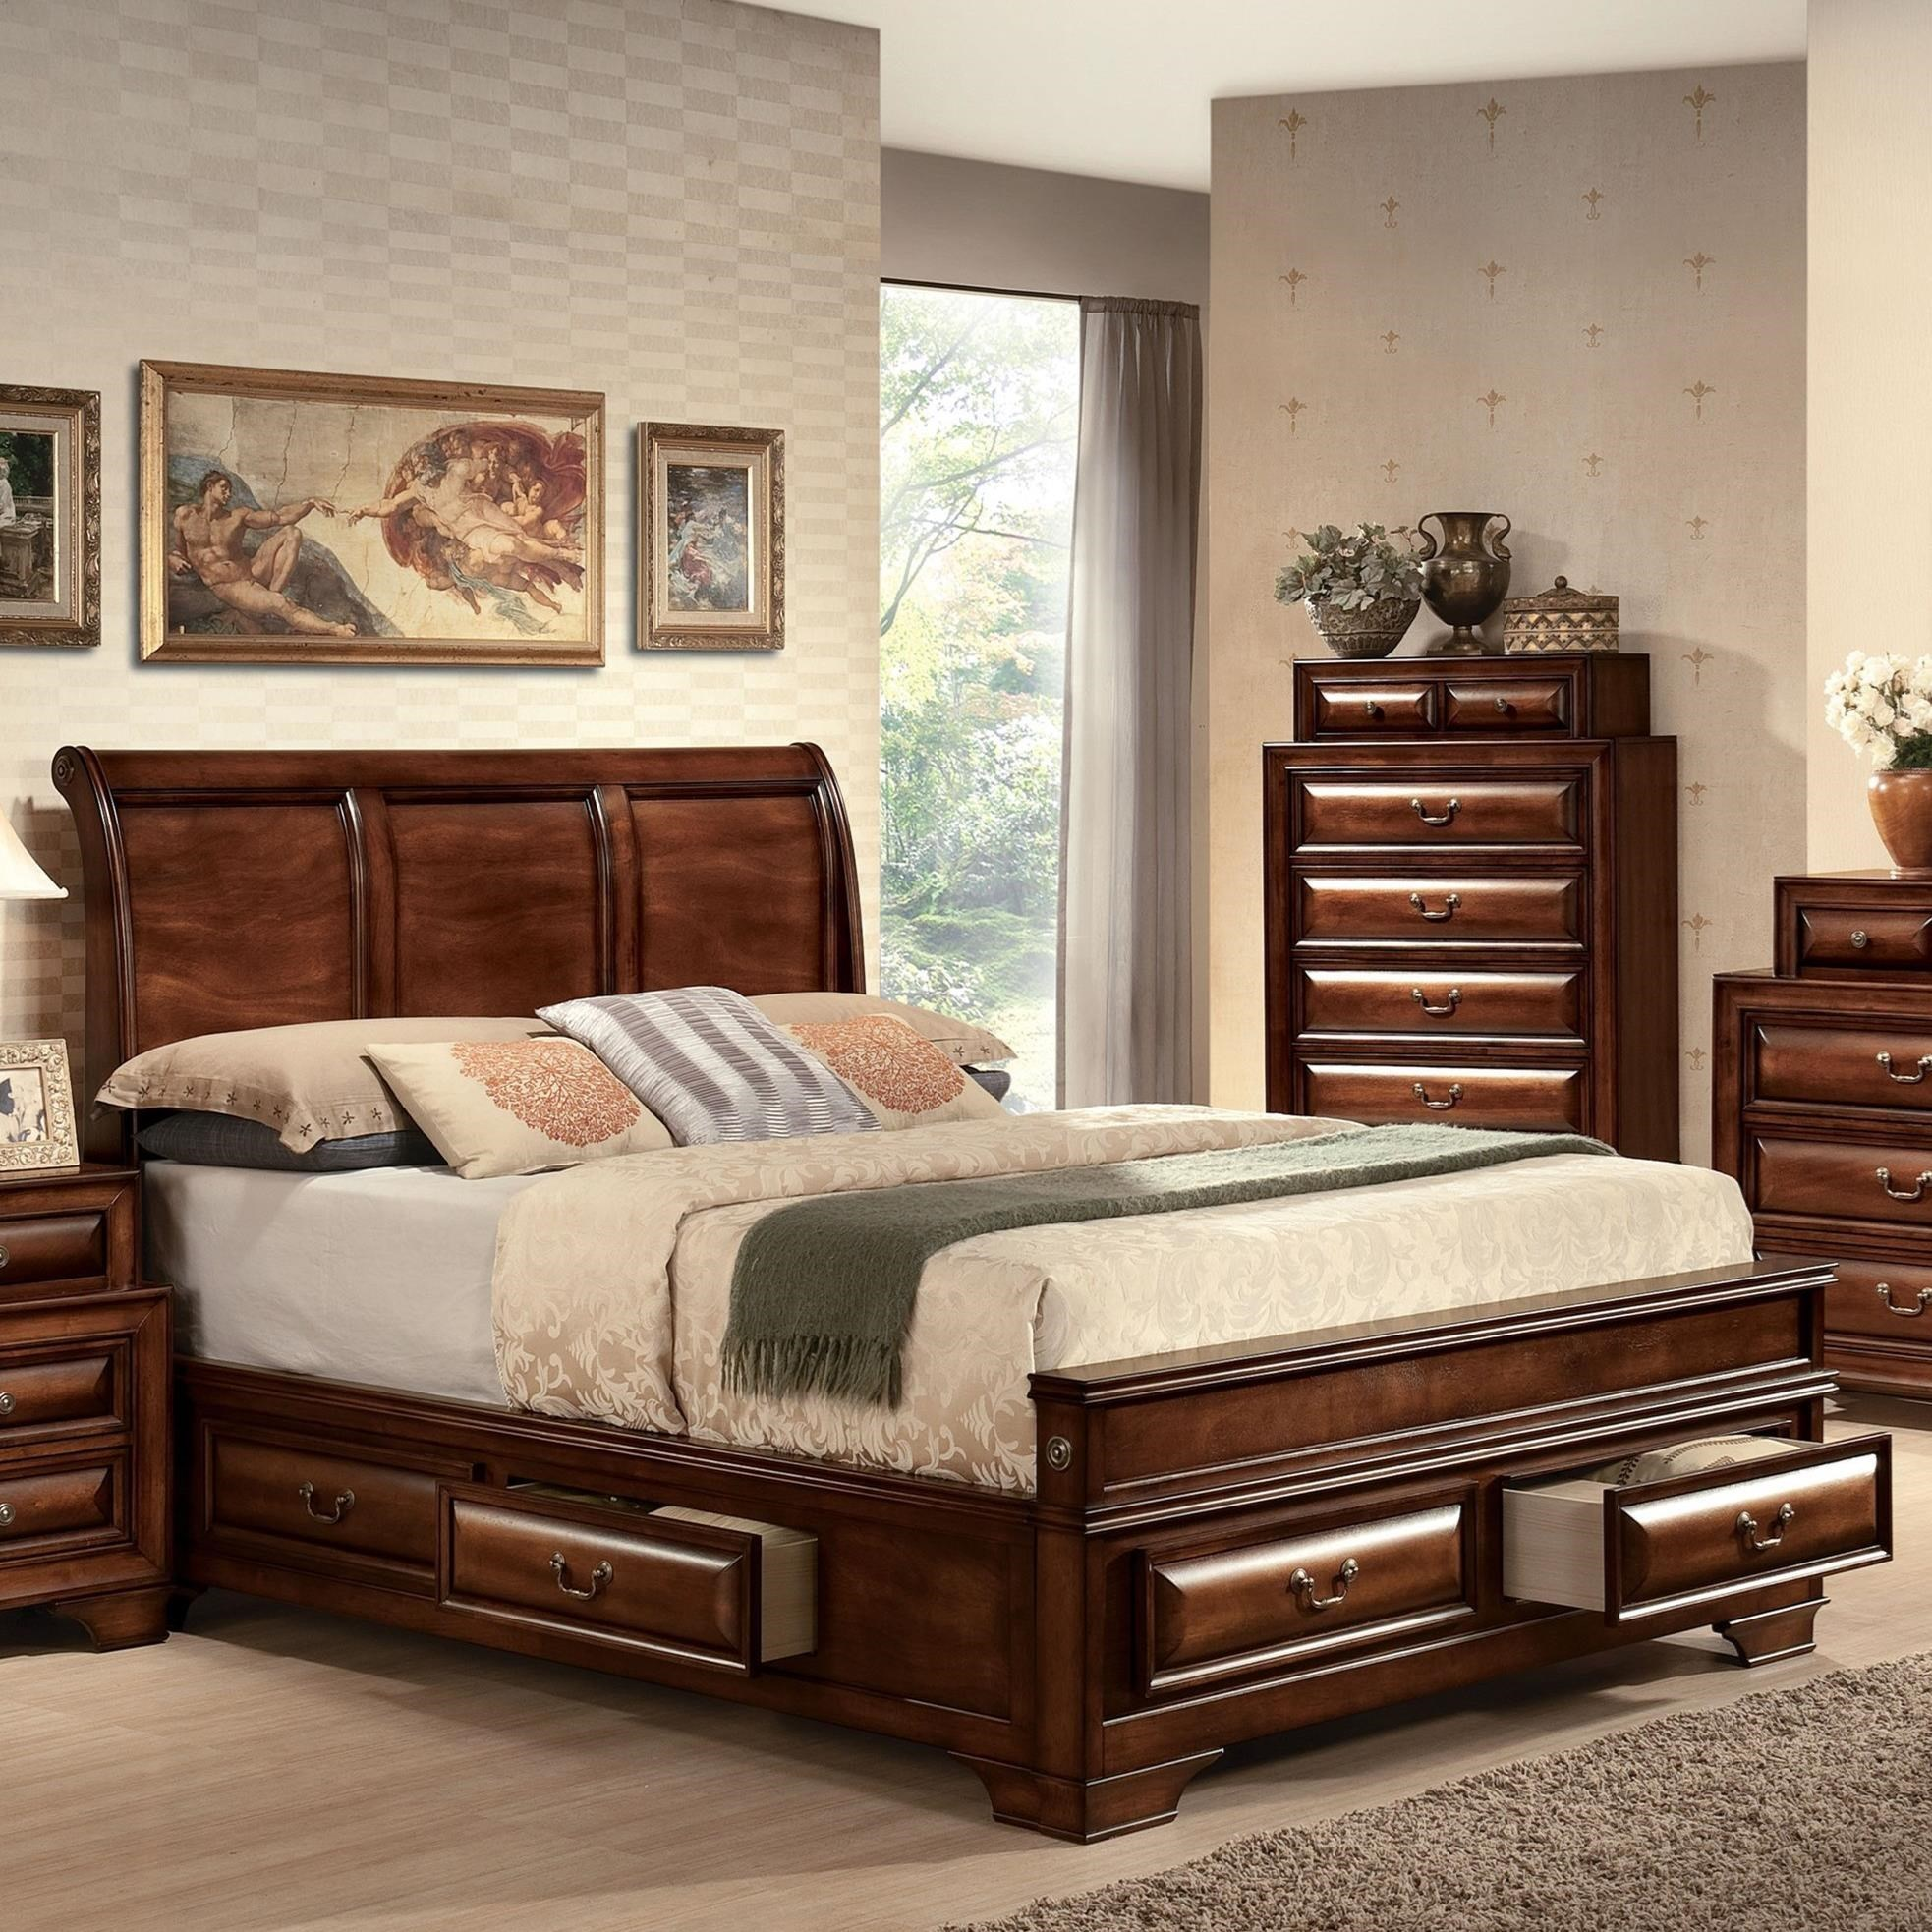 Konane Queen Bed by Acme Furniture at Dream Home Interiors